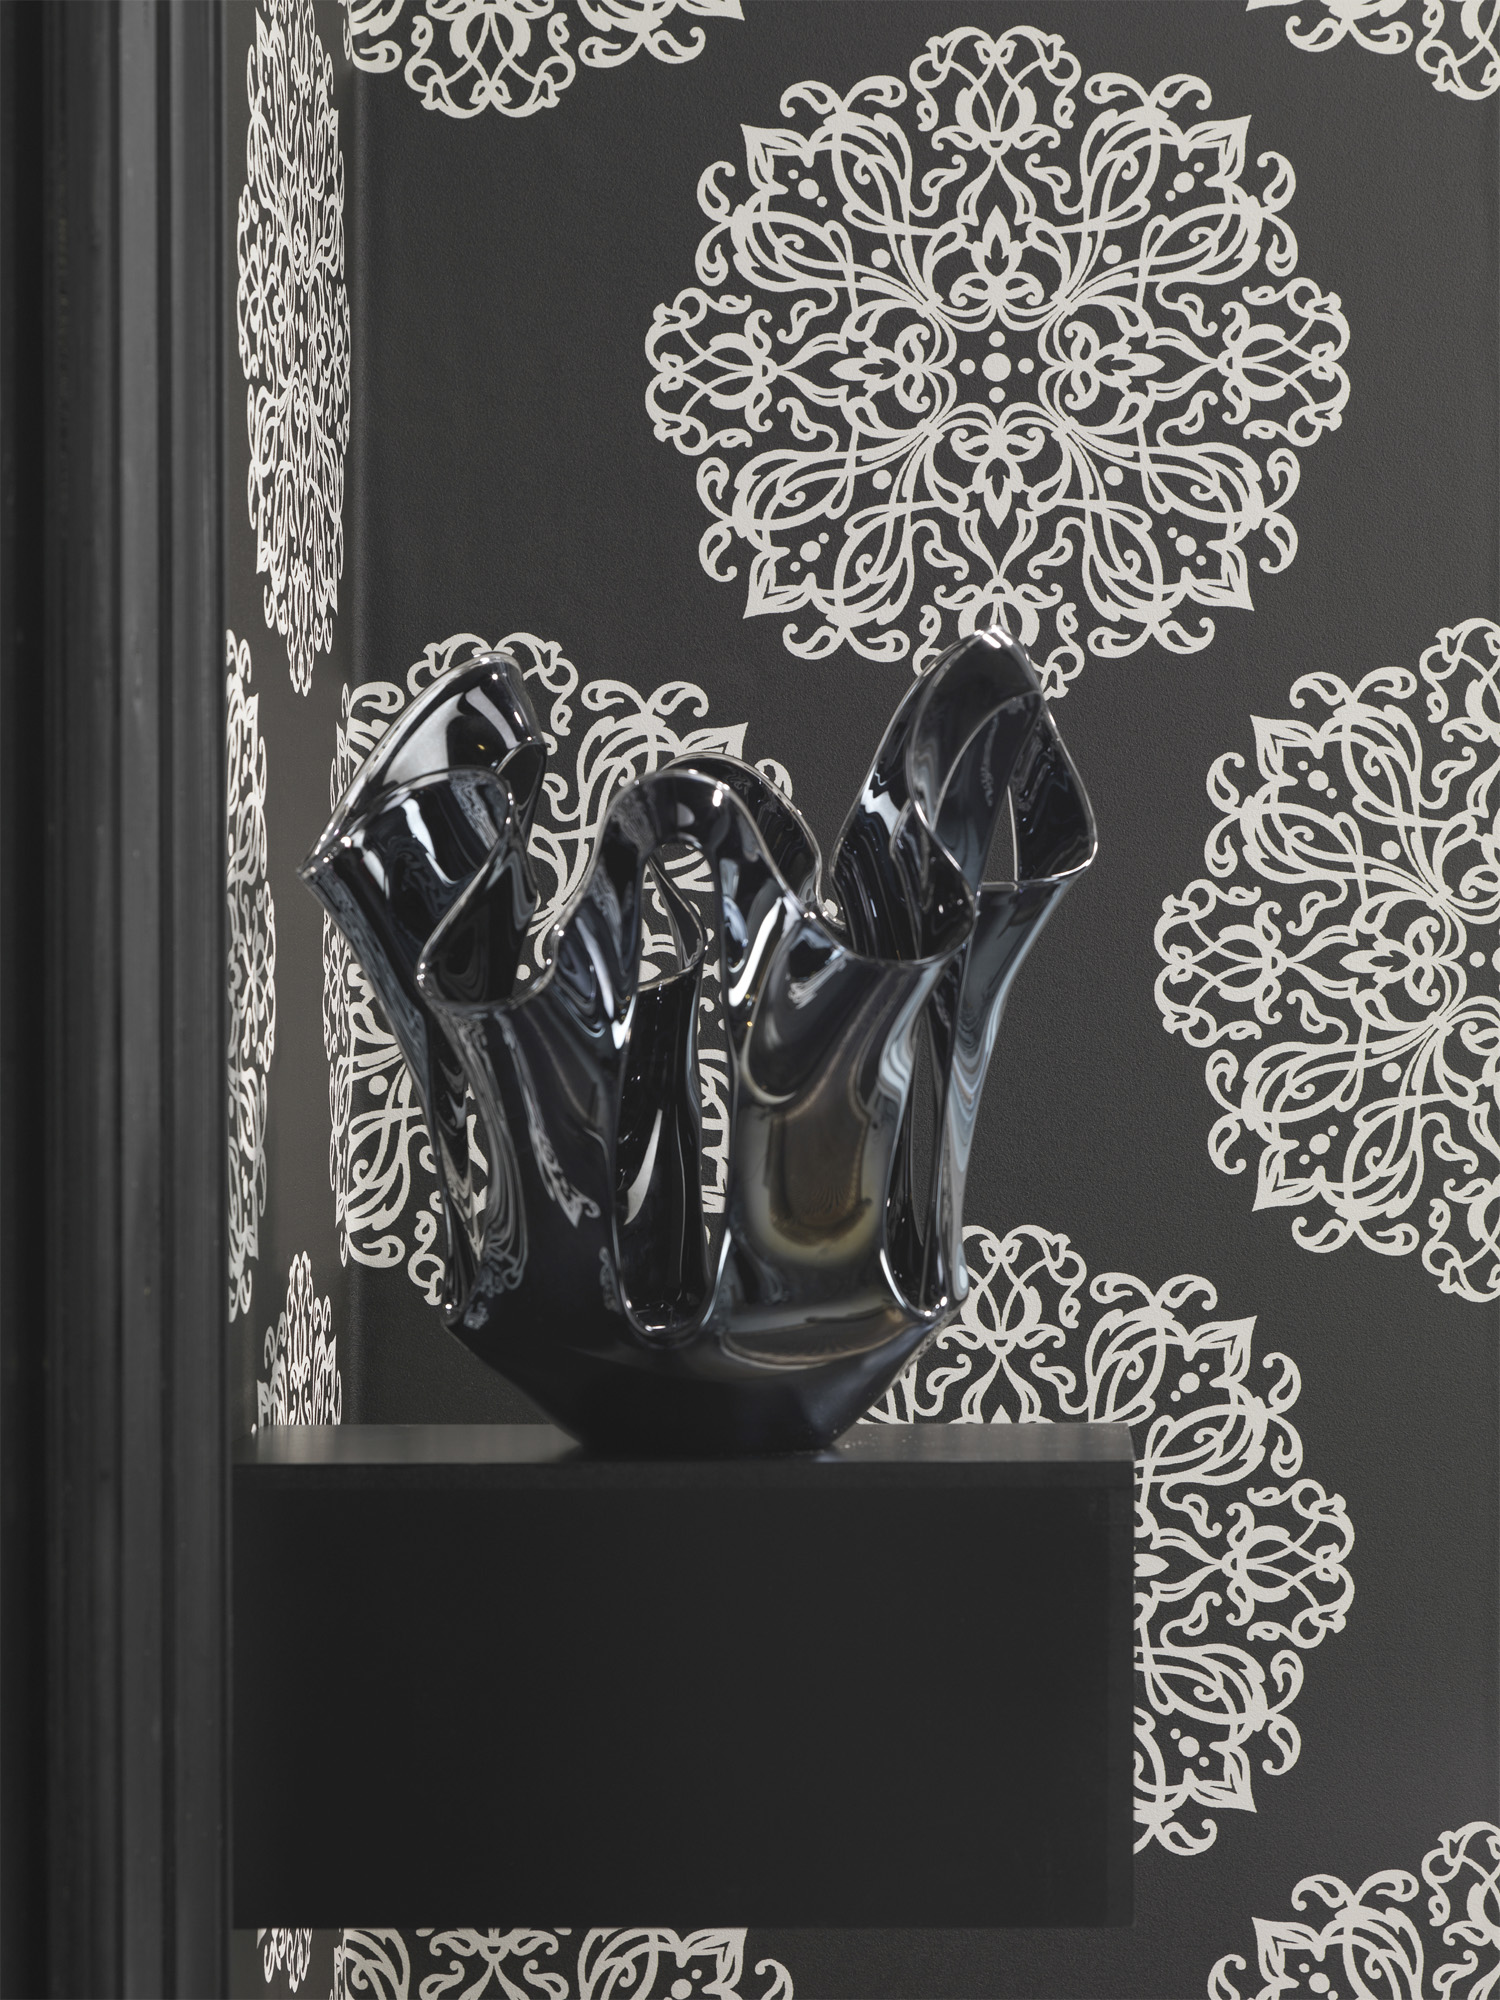 Embellished-is-comprised-of-intricate-weaved-lines-in-a-wallpaper-wp440278